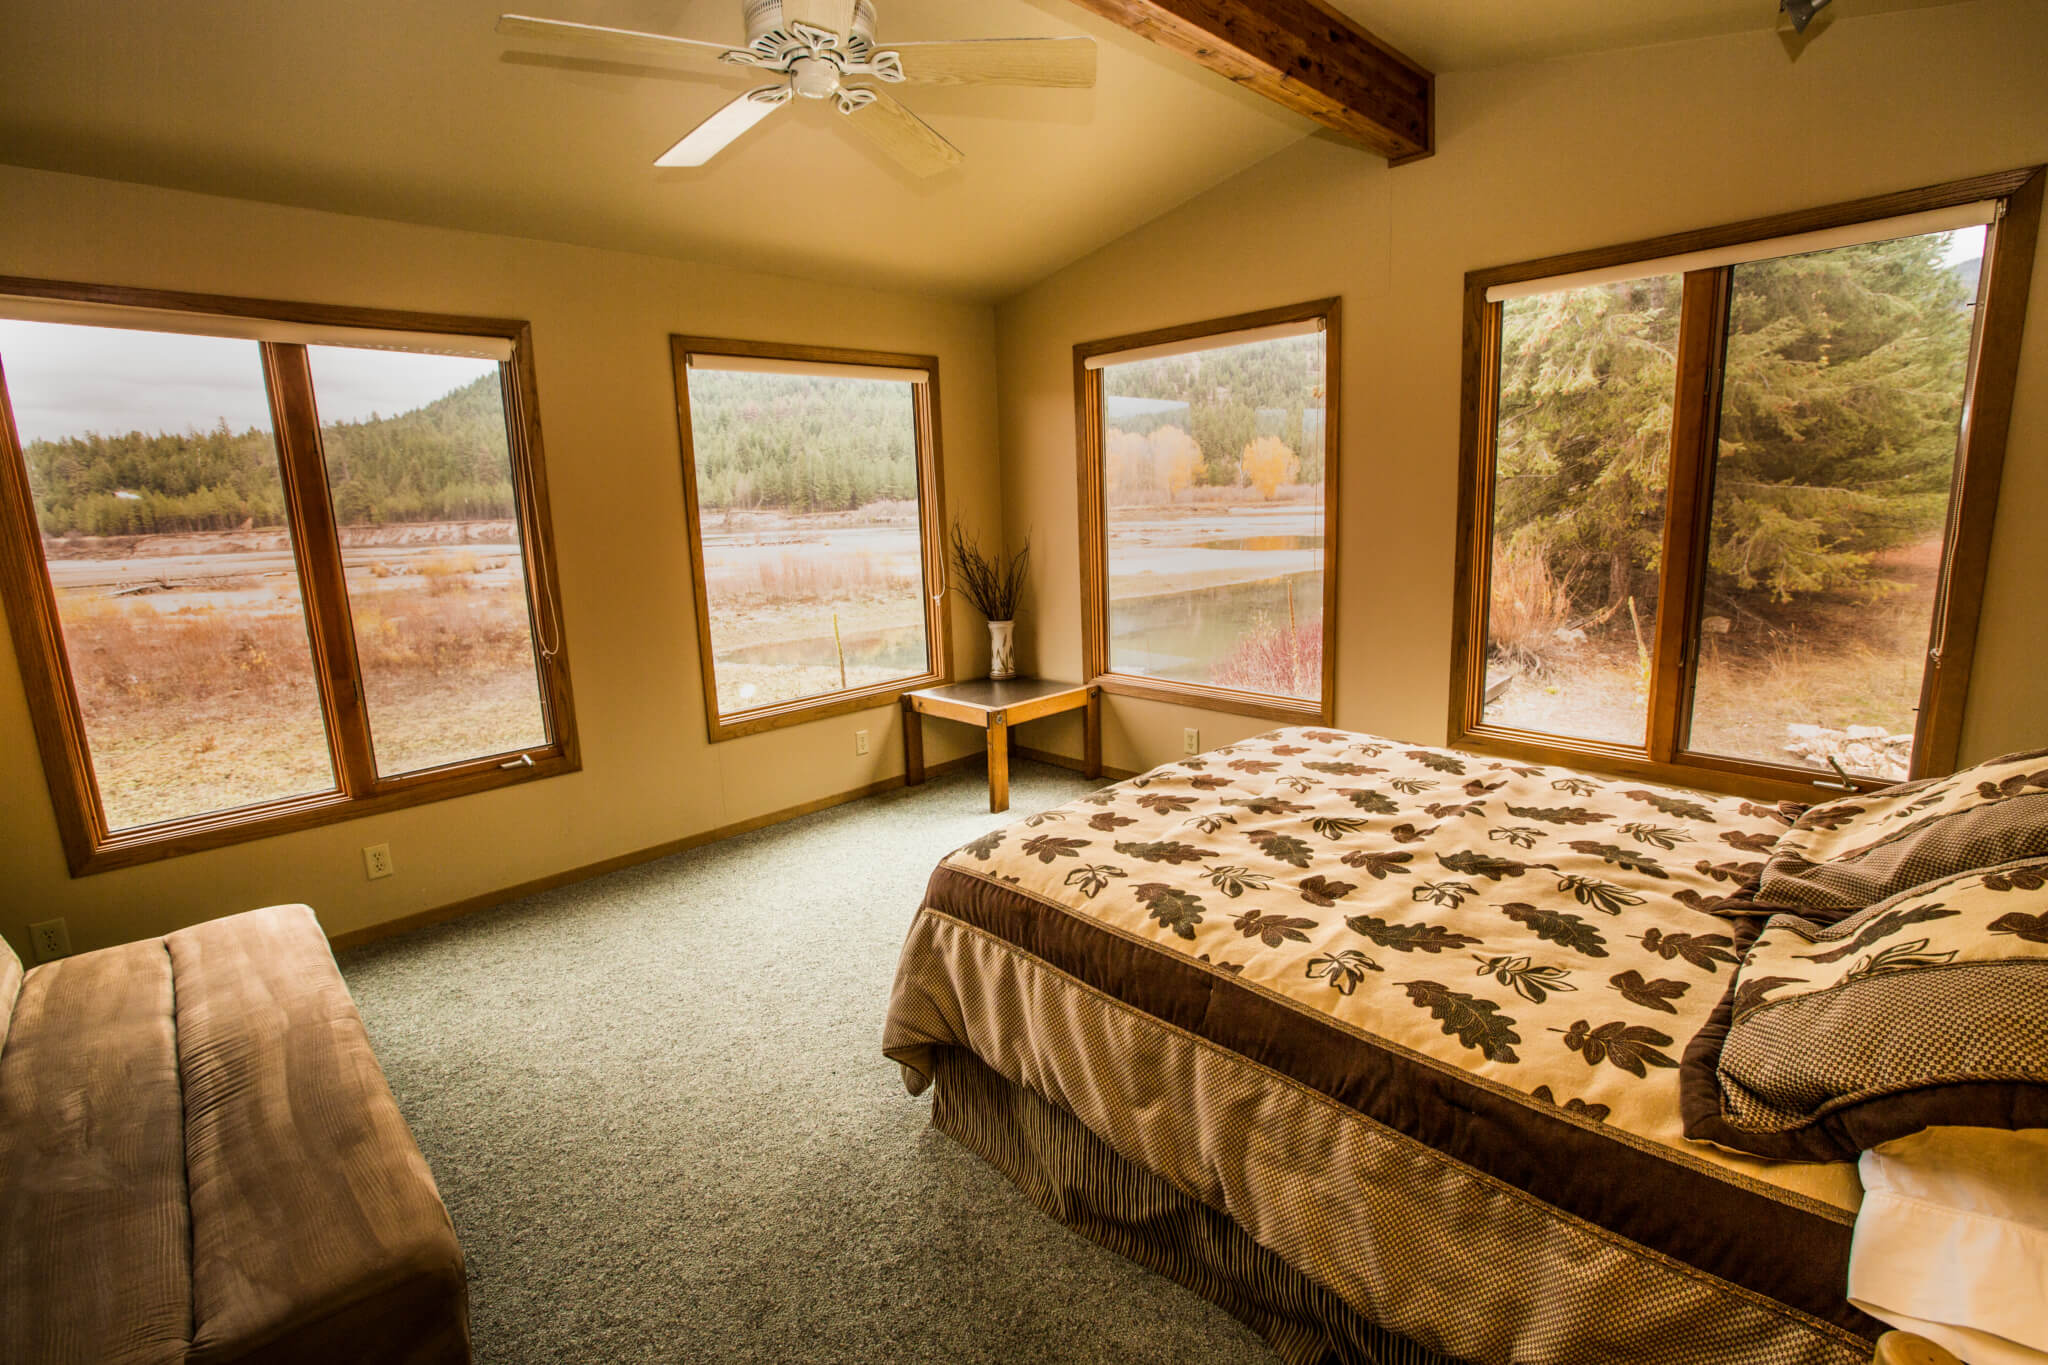 Bedroom of fishing lodge.